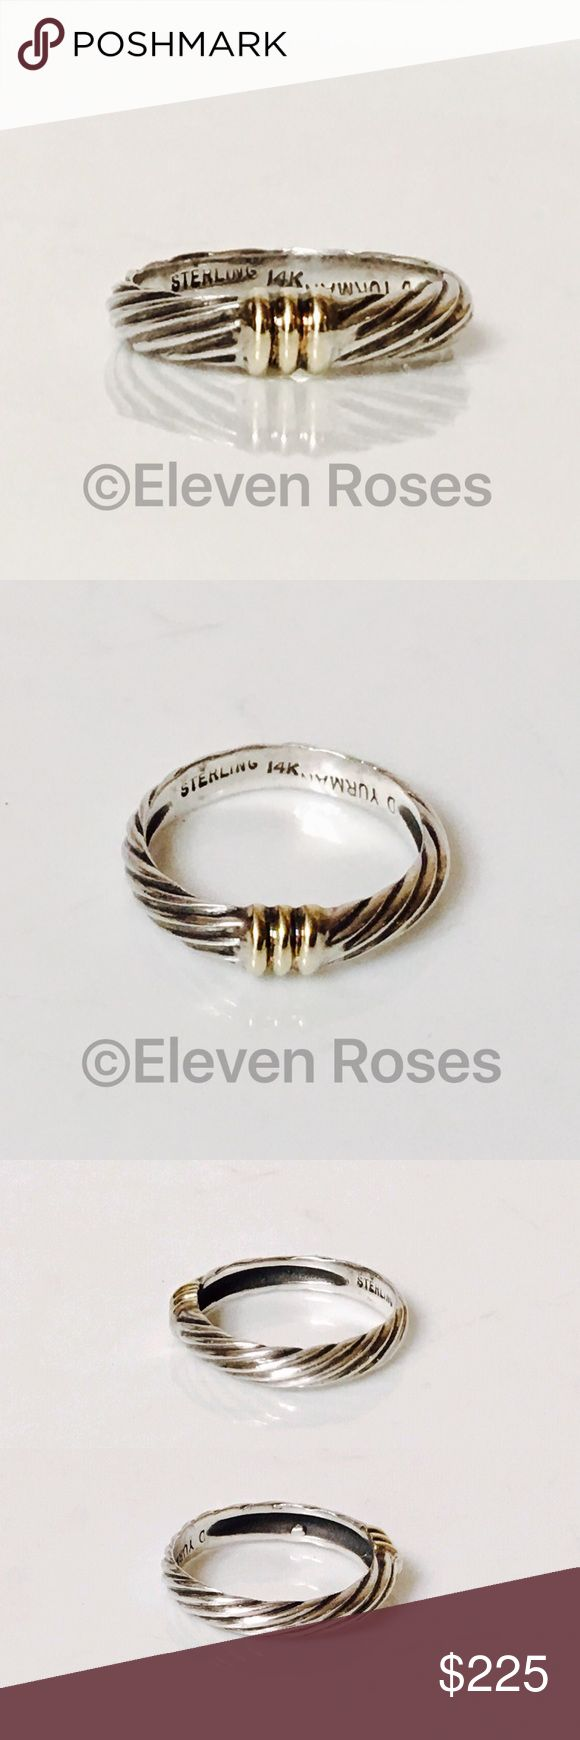 David Yurman 925 & 14k Single Station Metro Ring David Yurman Single Station Petite Metro Band Ring - 925 Sterling Silver & 585 14k Yellow Gold - US Size 6  -  Preowned / Preloved  💕 May Show Slight Signs Of Having Been Worn.    📷  Listing Images Are Of Actual Item Being Offered David Yurman Jewelry Rings